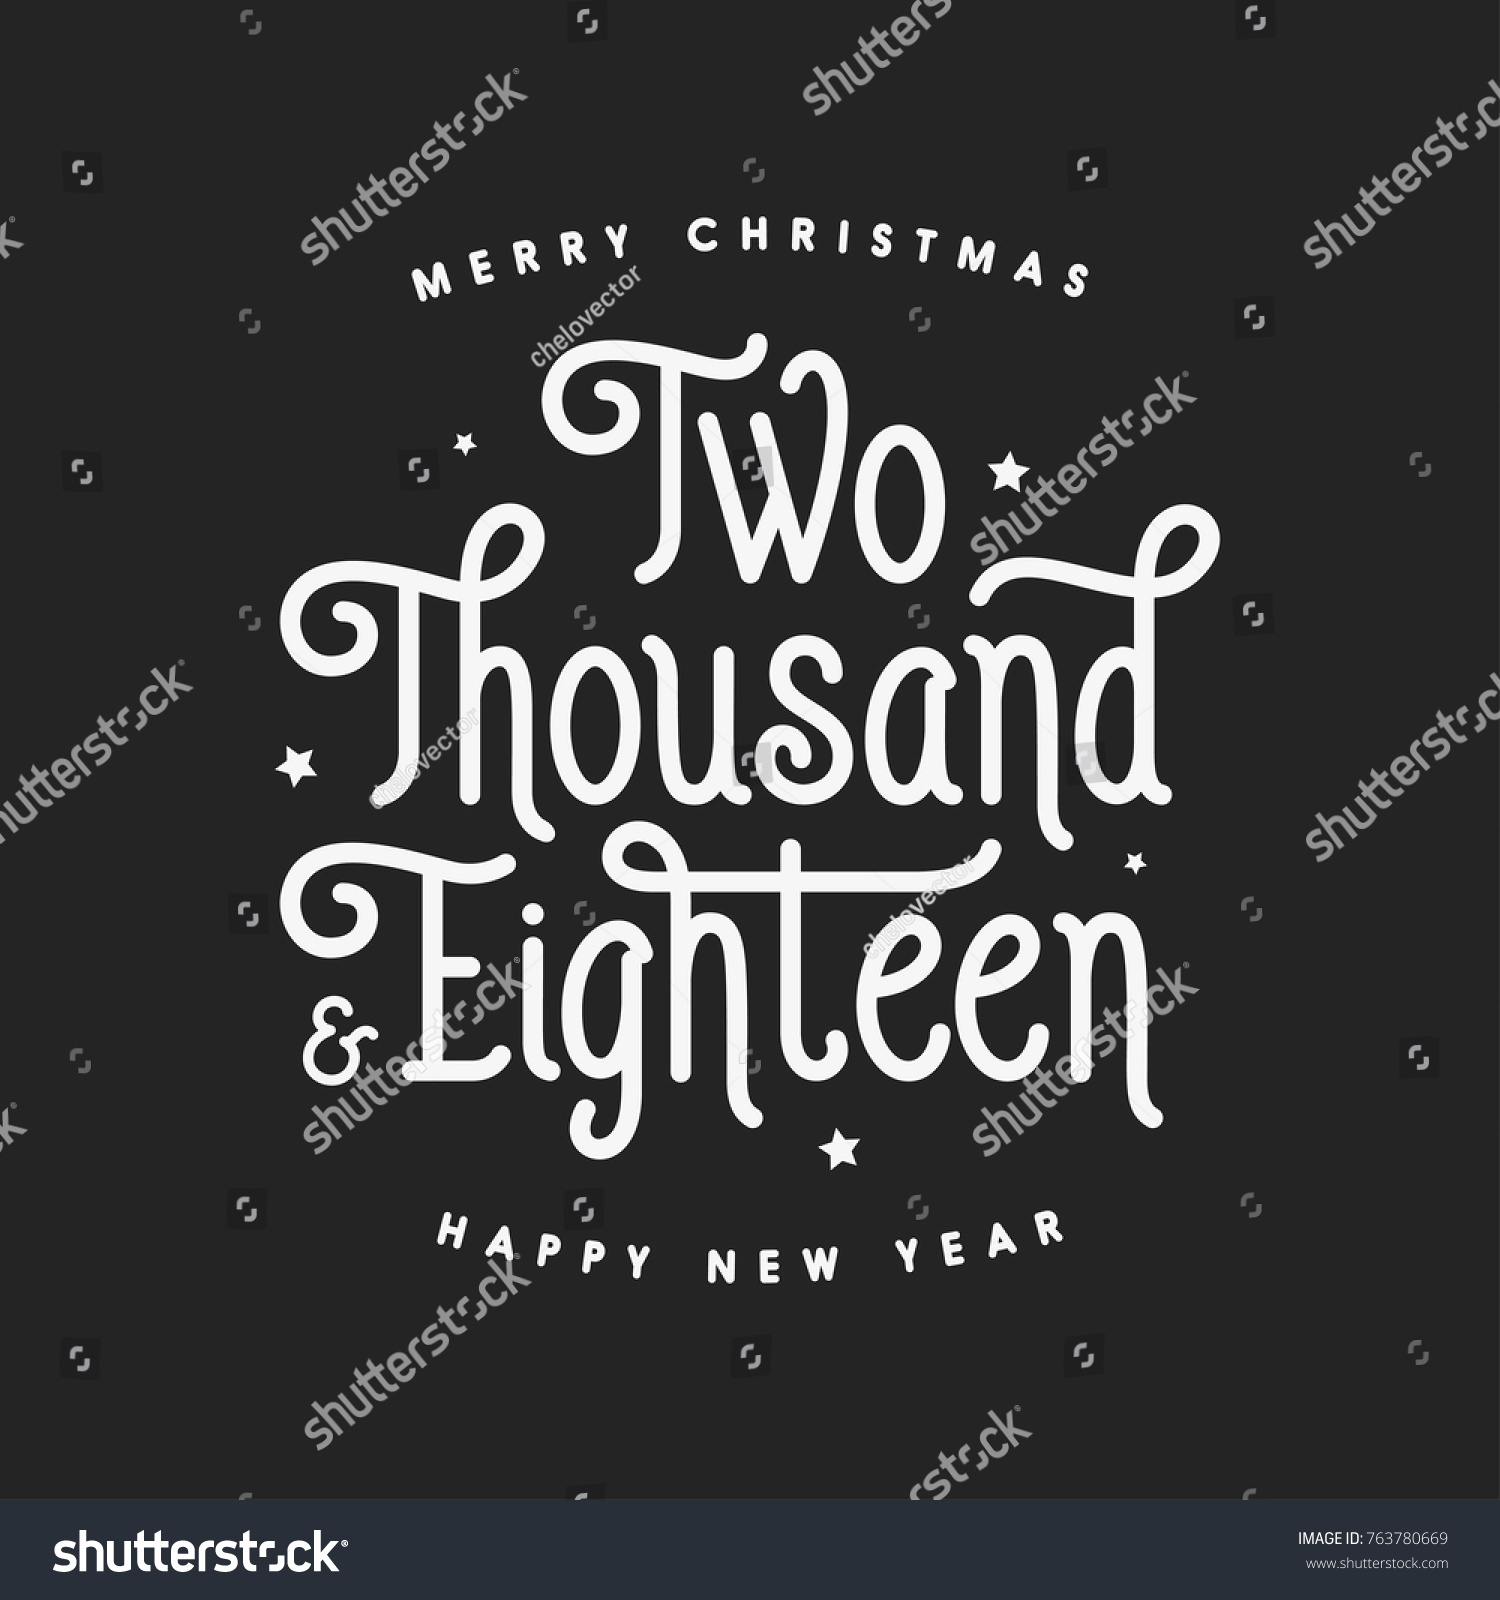 Merry Christmas Happy New Year Lettering Stock Vector 763780669 ...